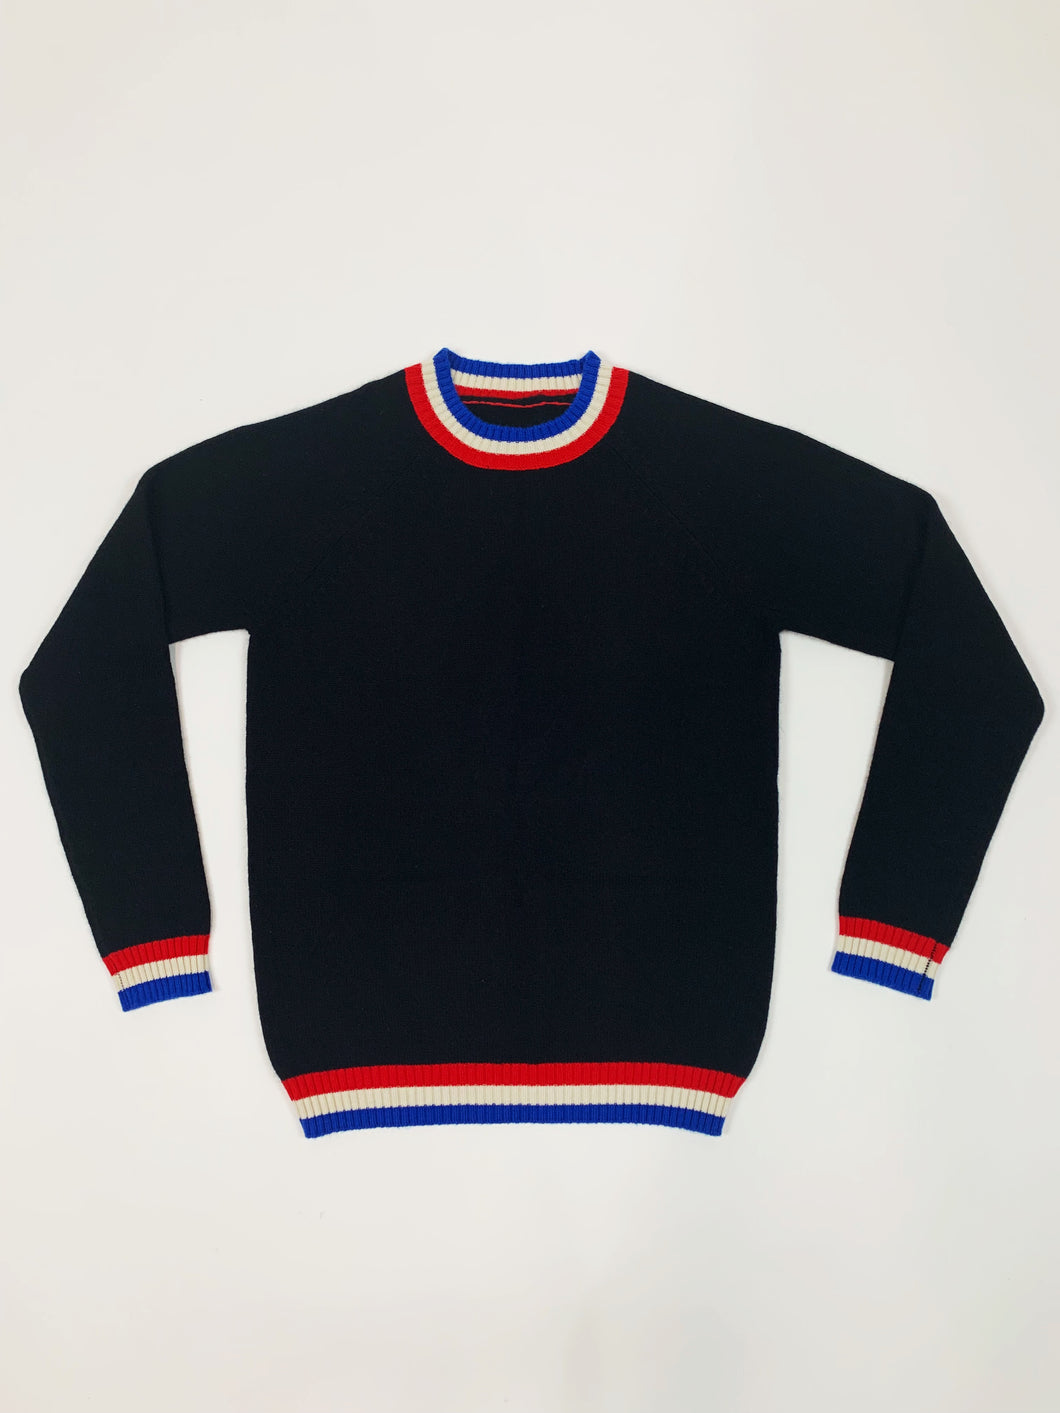 BANNER COLLAR SWEATER - WHOLESALE